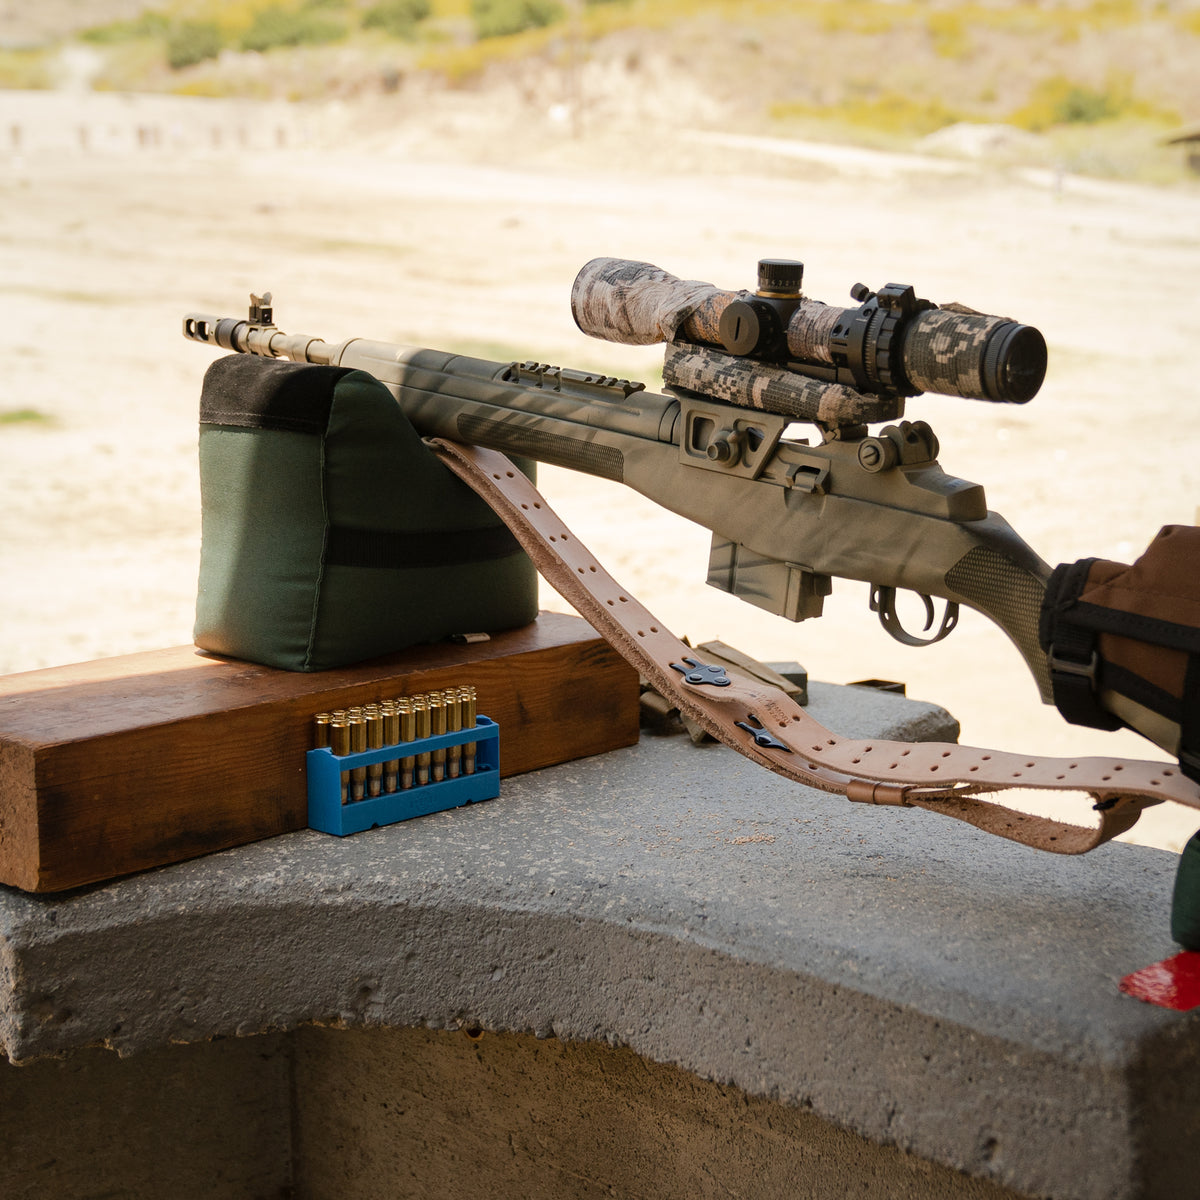 The ART scope on a classic M1A setup